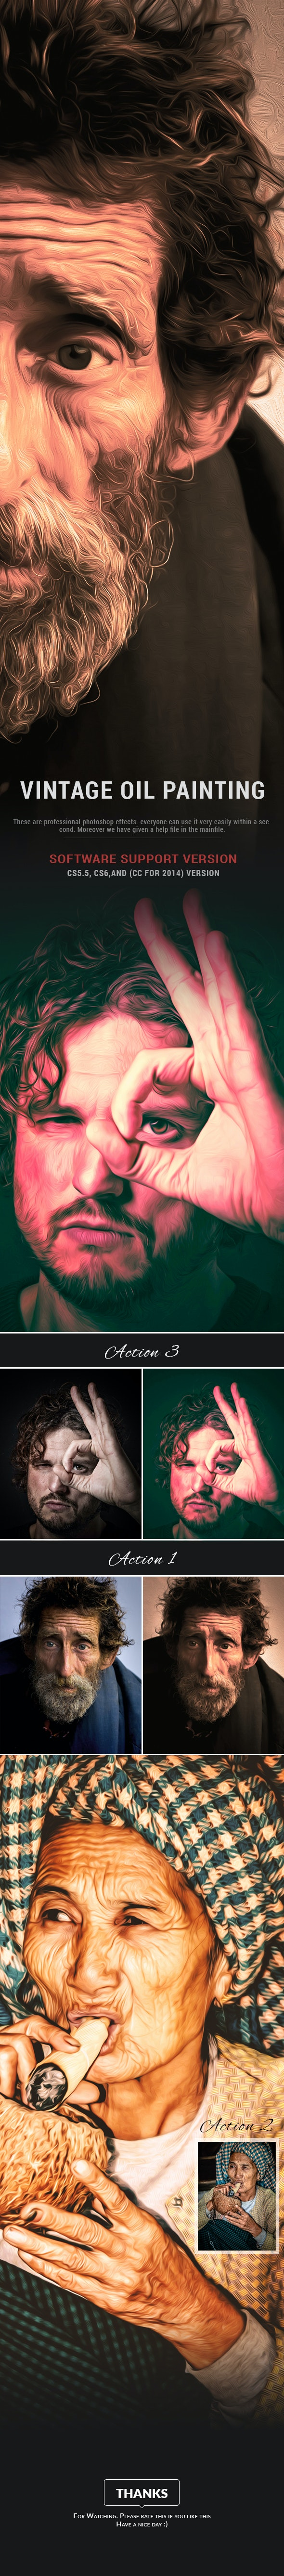 Vintage Oil Painting - Photo Effects Actions